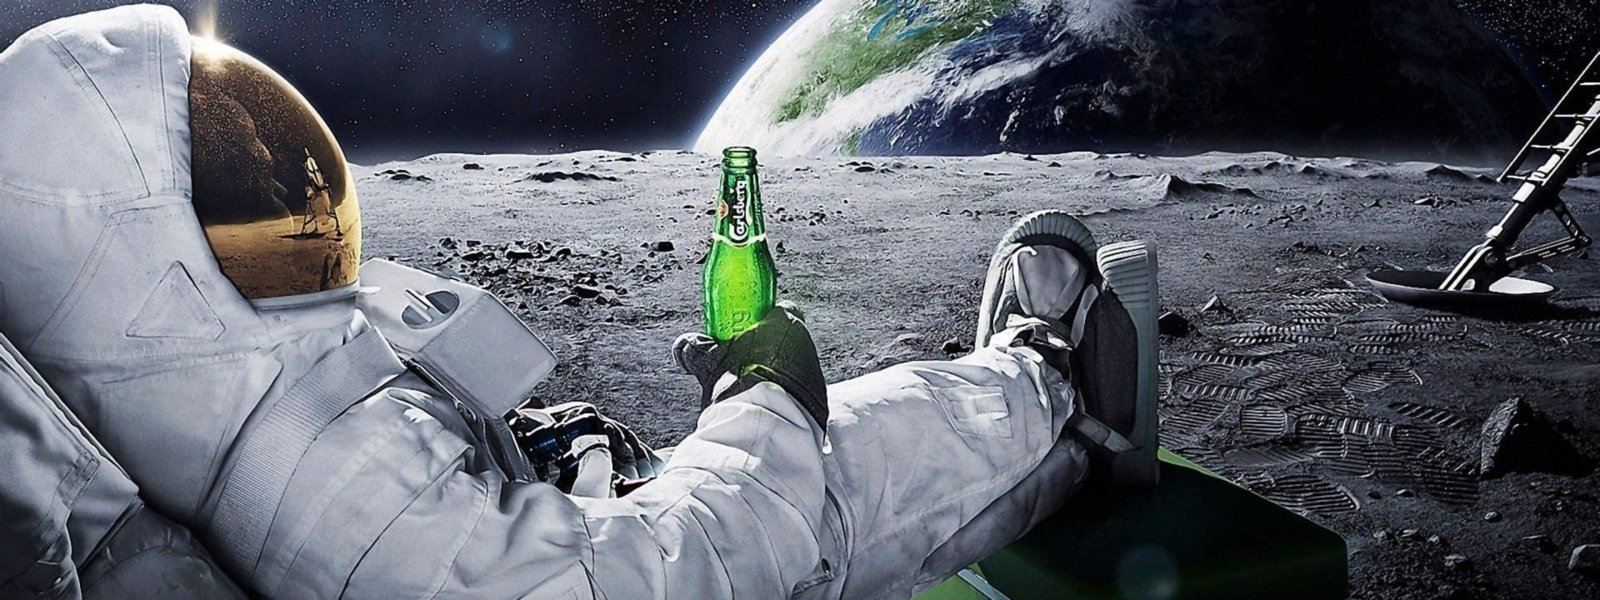 Carlsberg-on-moon-1200x3200.jpg